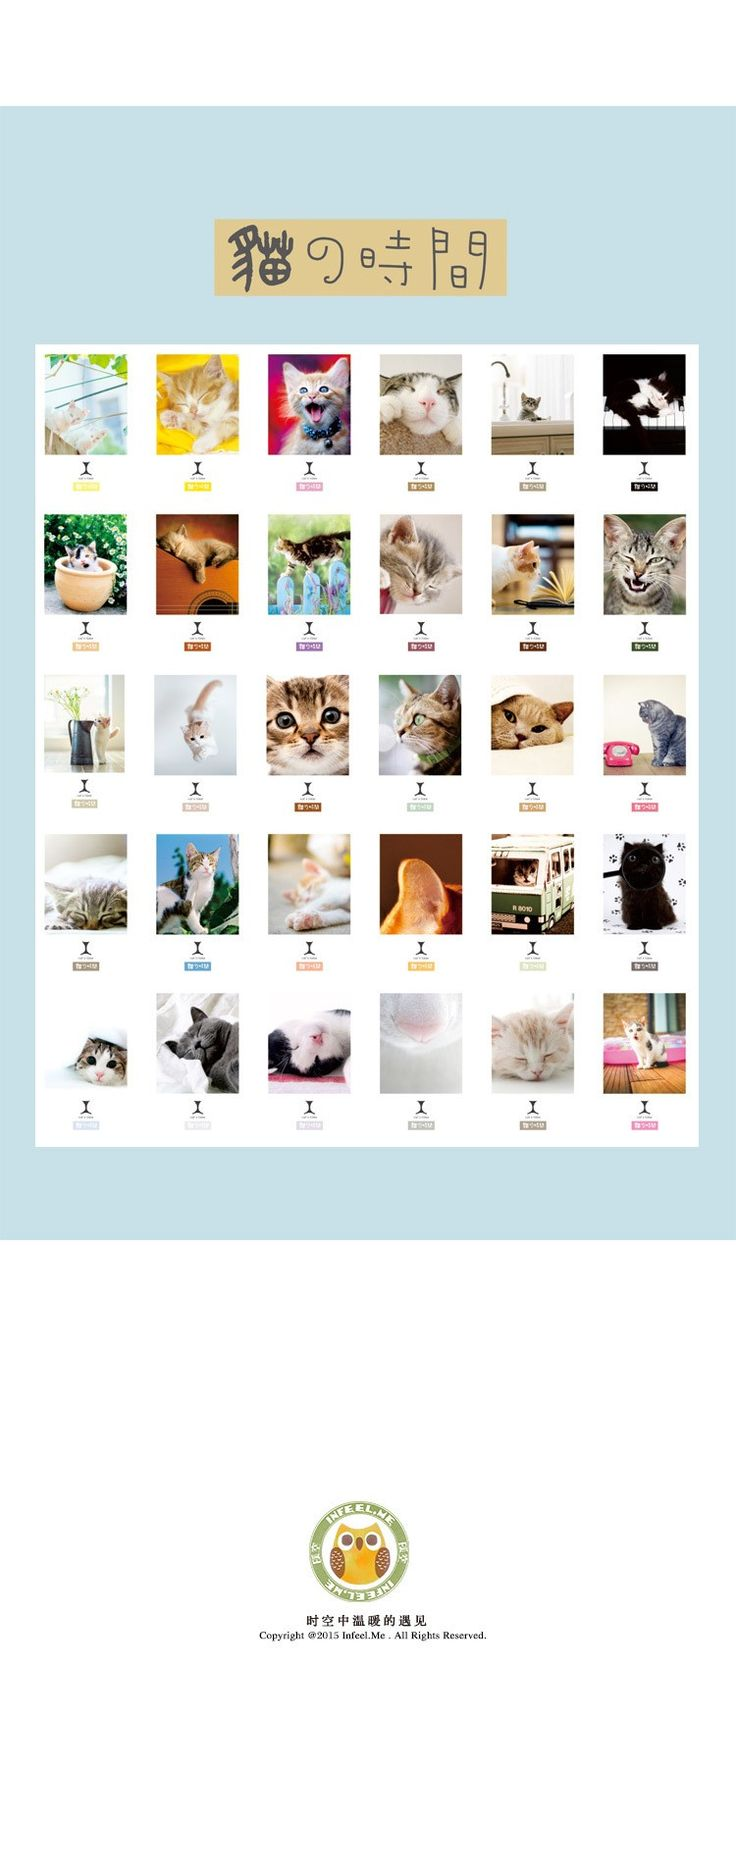 42 best aliexpress images on Pinterest | Birthday gift cards ...